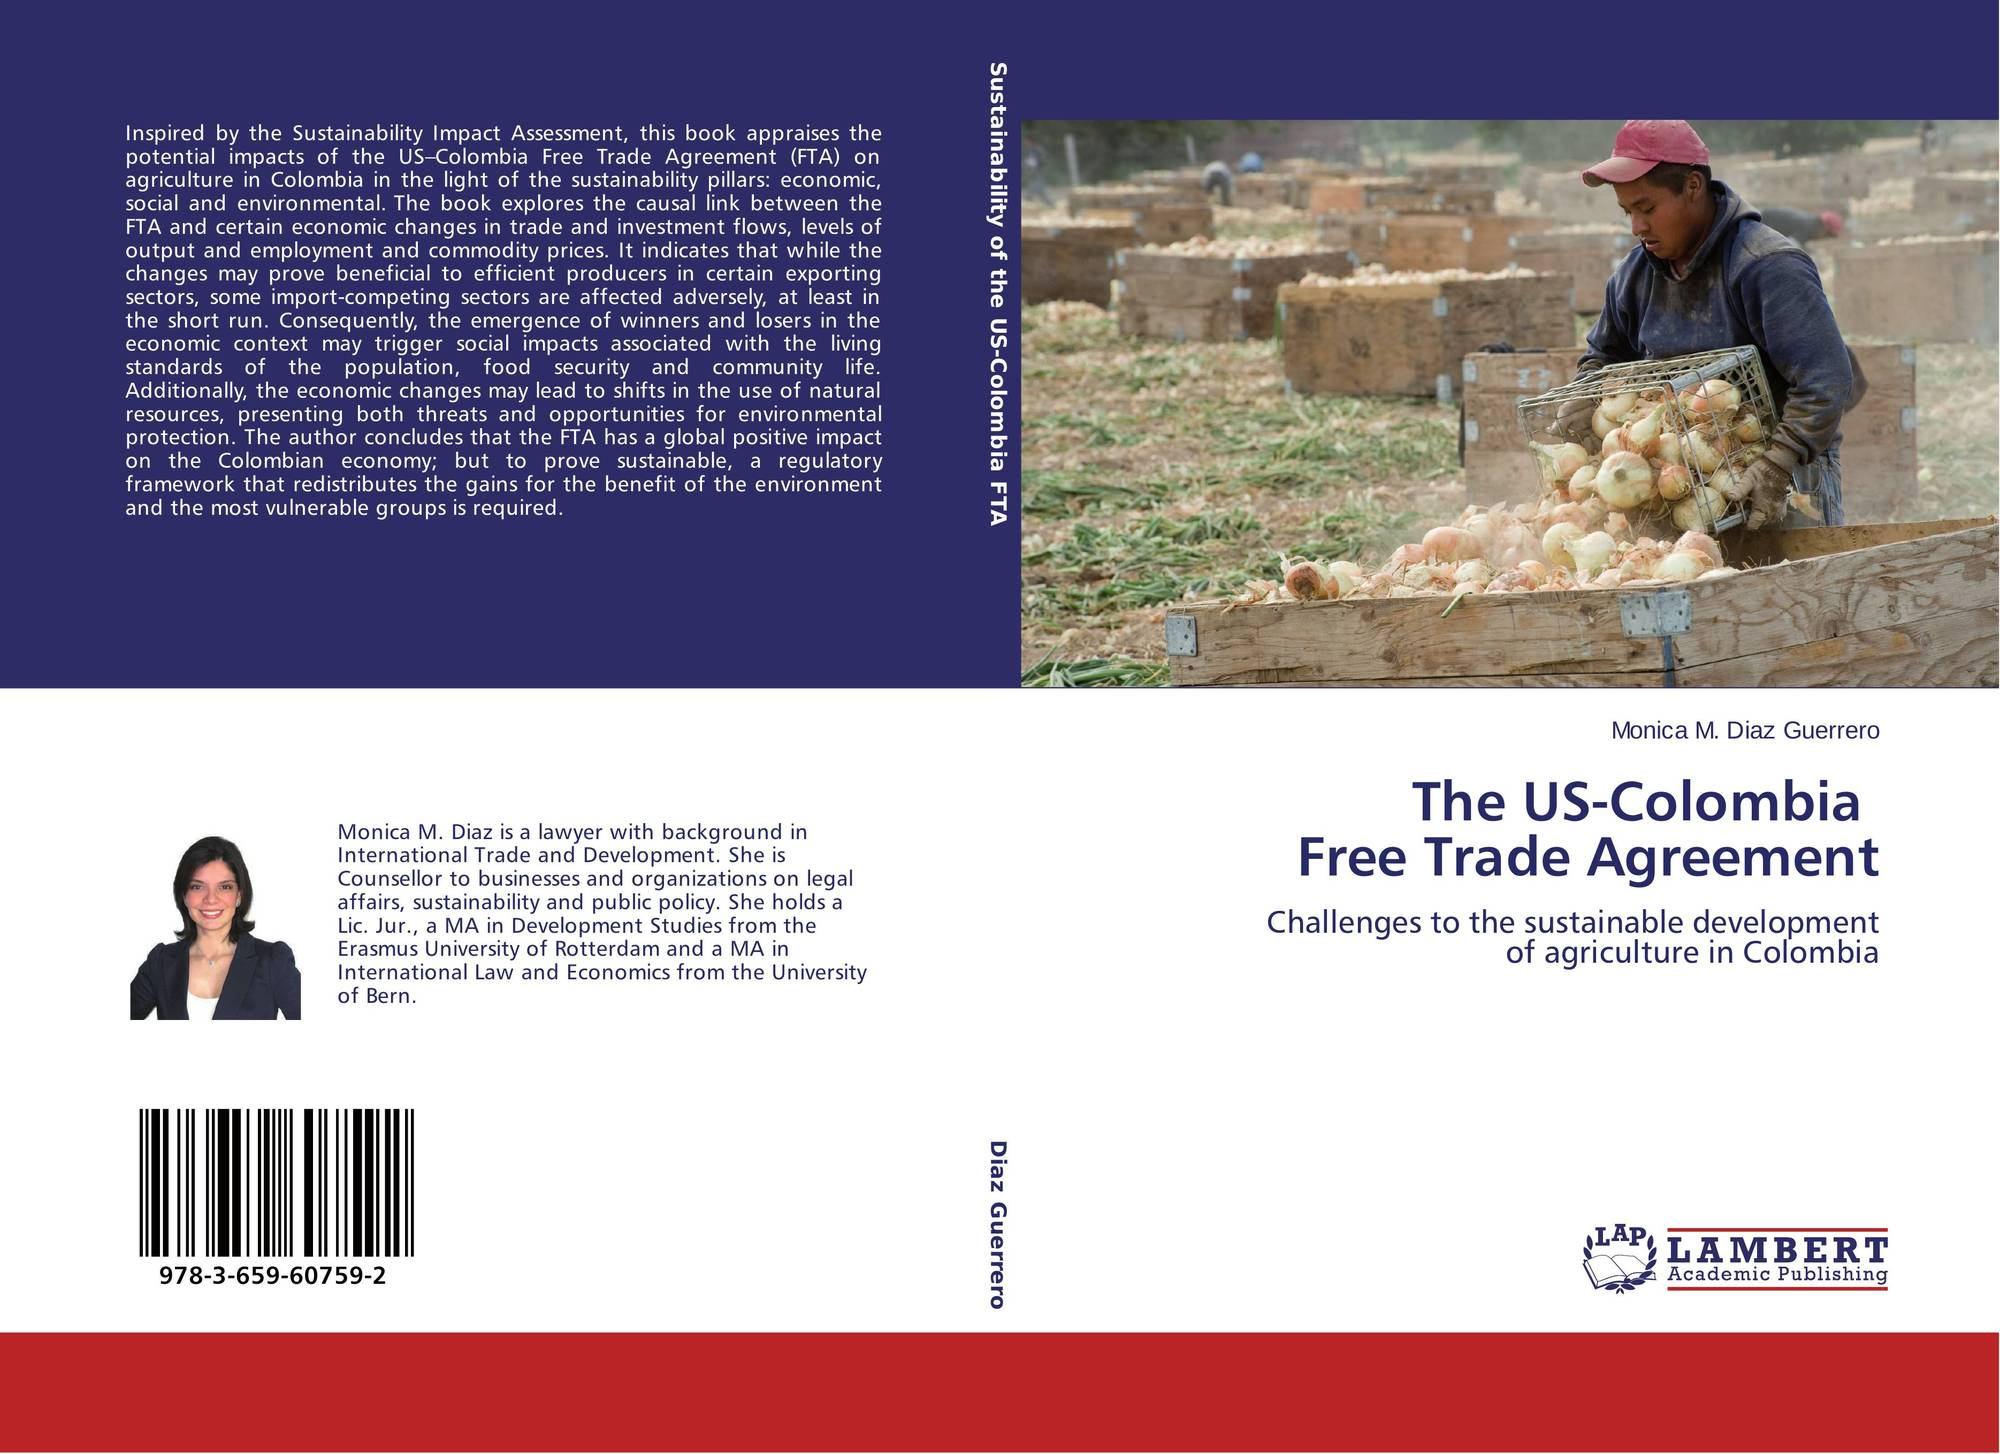 The Us Colombia Free Trade Agreement 978 3 659 60759 2 3659607592